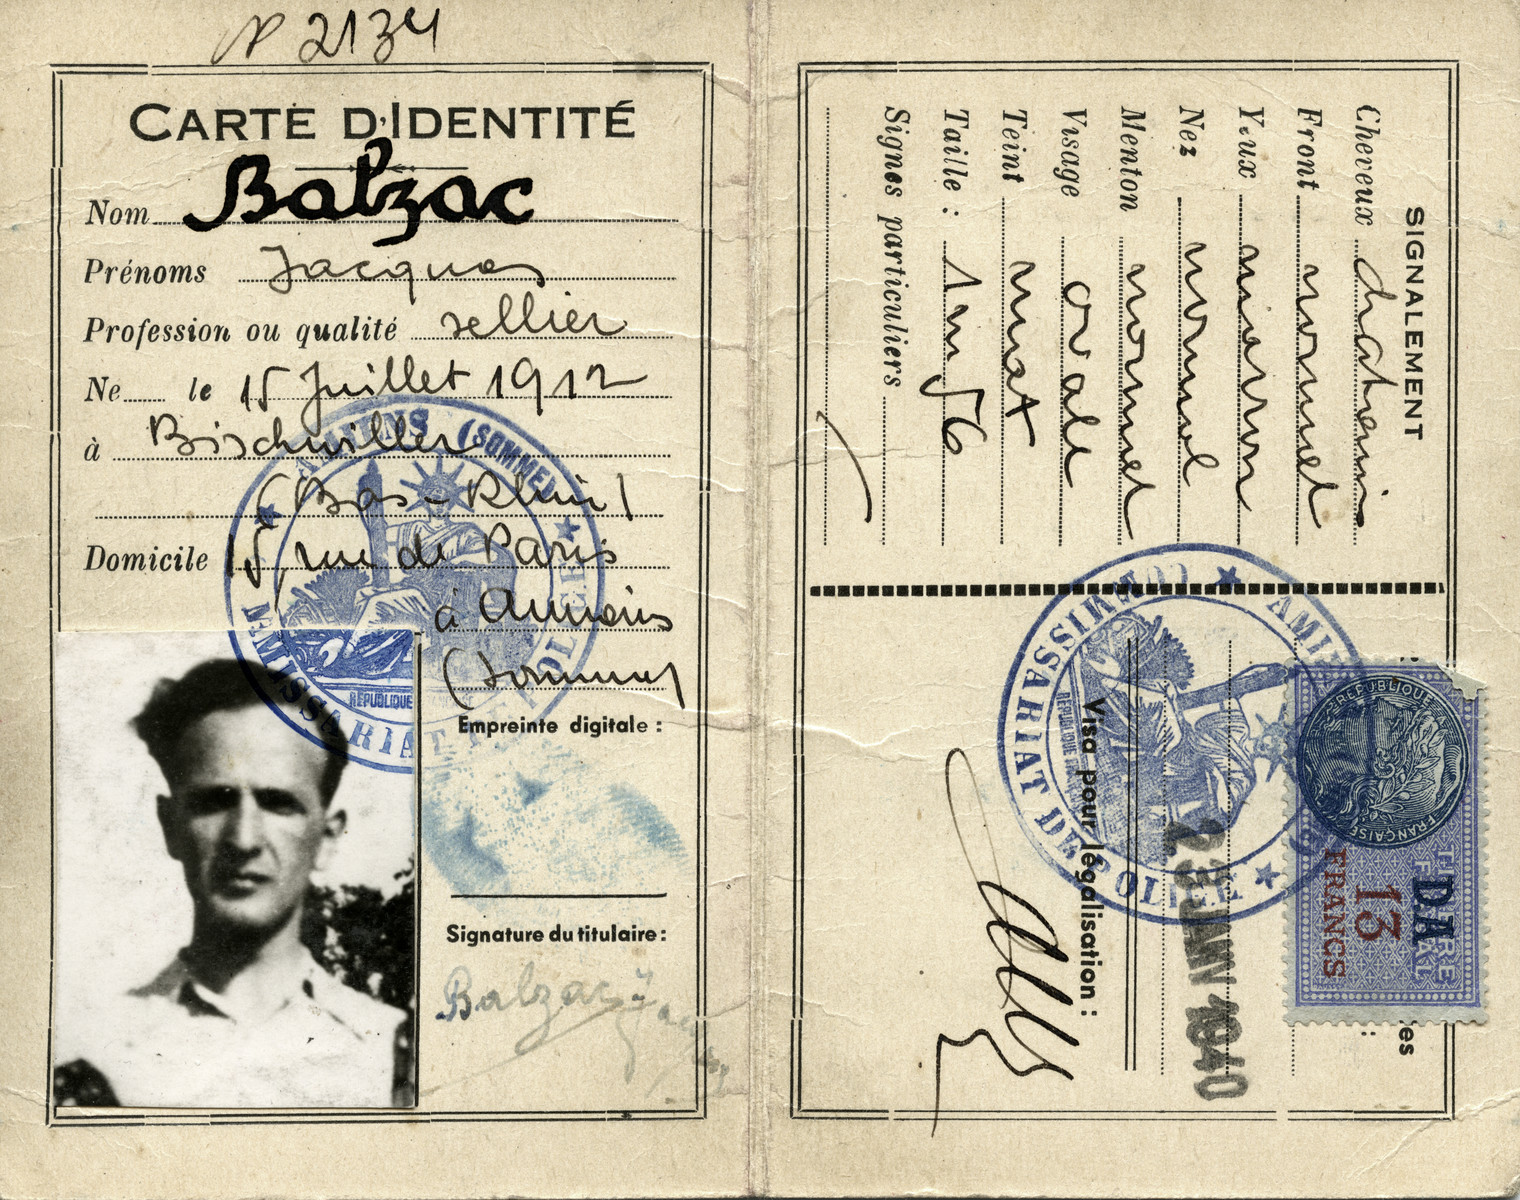 False identification papers given to Jacques Balsam under the pseudonym of Jacques Balzac.  [The January 1940 date is clearly false as well since Germany only invaded France in May 1940, so at the time this card was supposedly issued, Aharon Yaakov Balsam was still using his true name.]